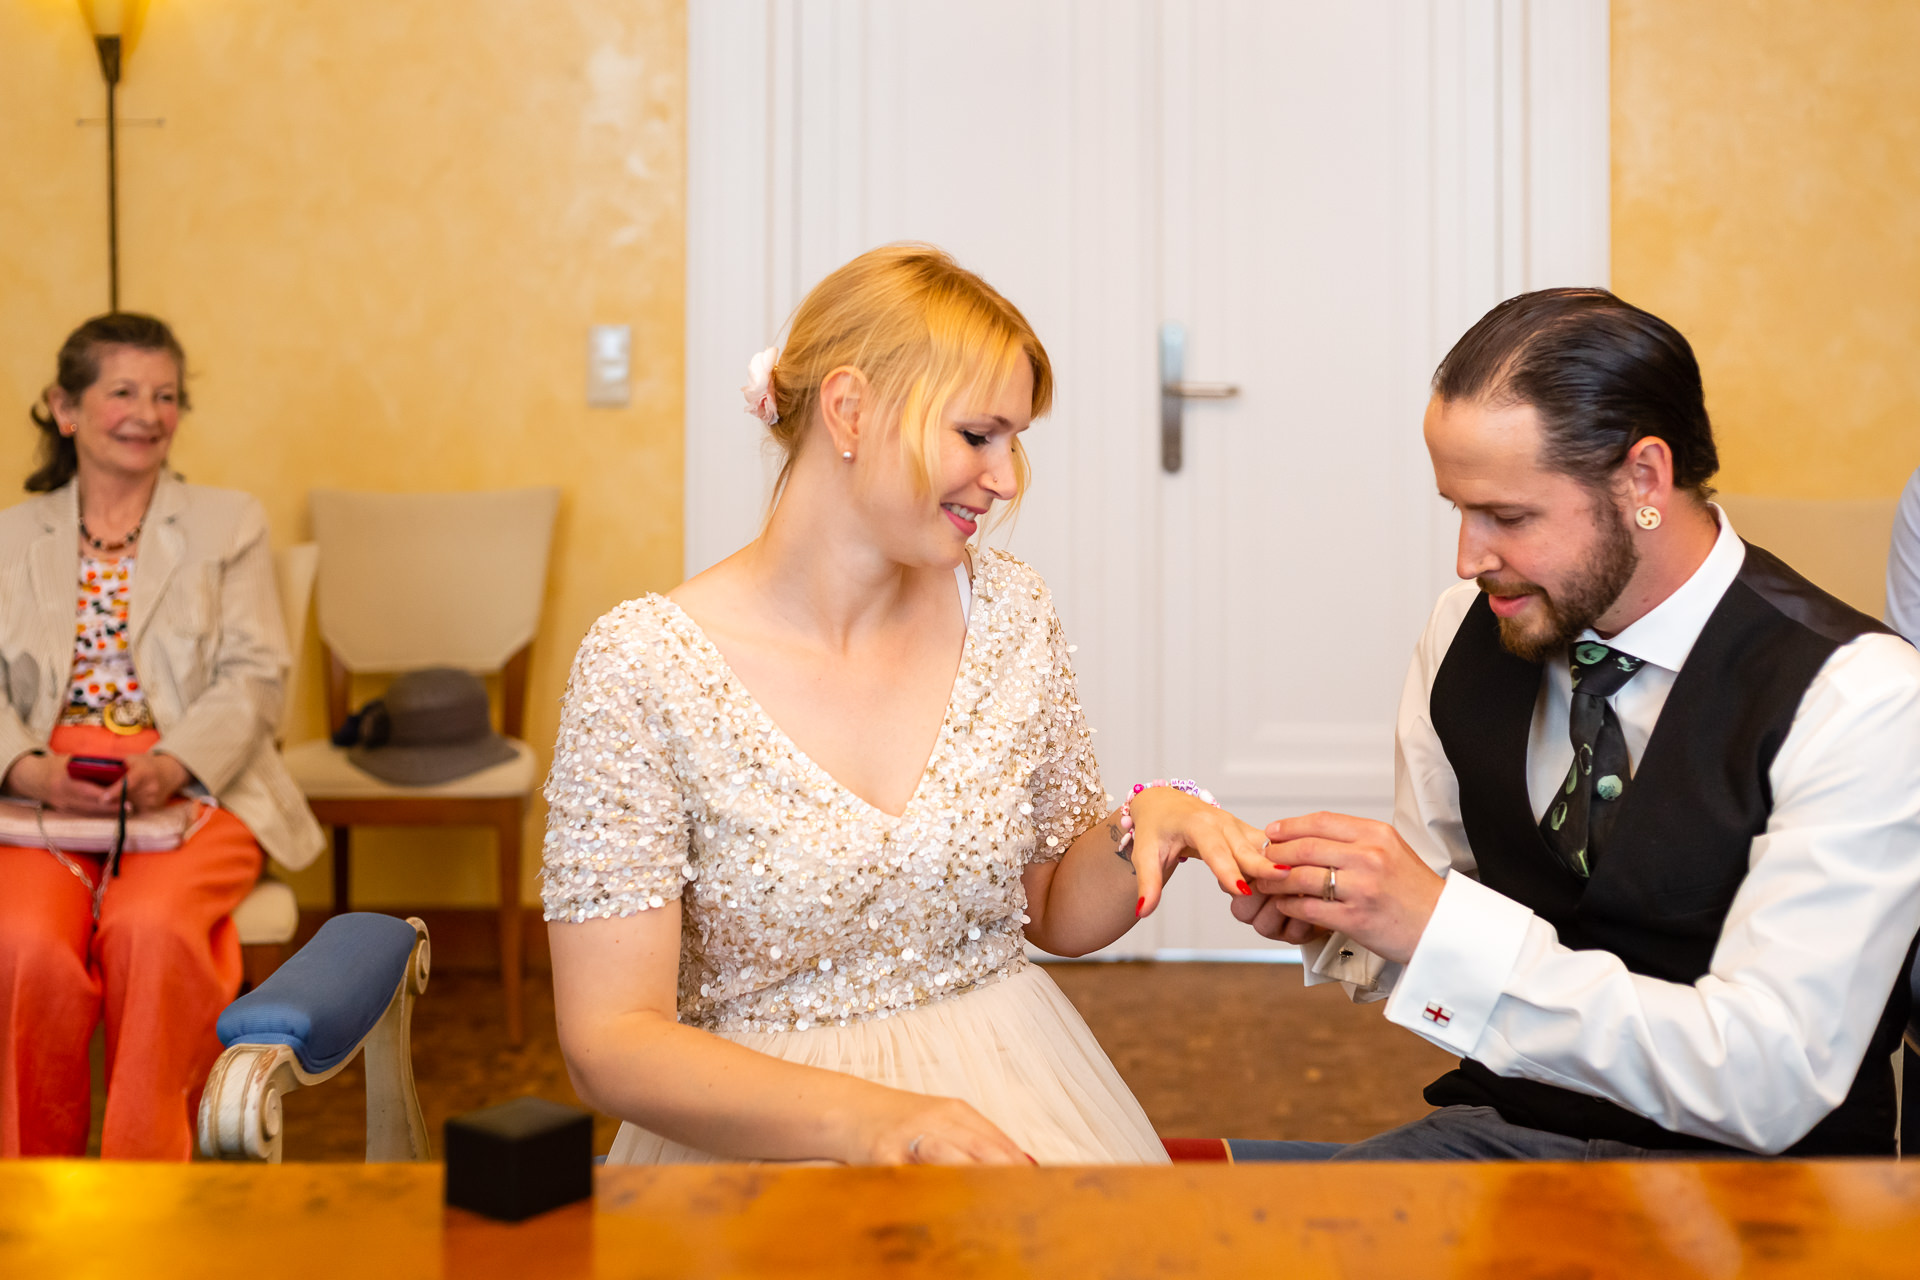 City Hall Dudelange Elopement Picture | It's time to exchange rings, and the bride watches the groom